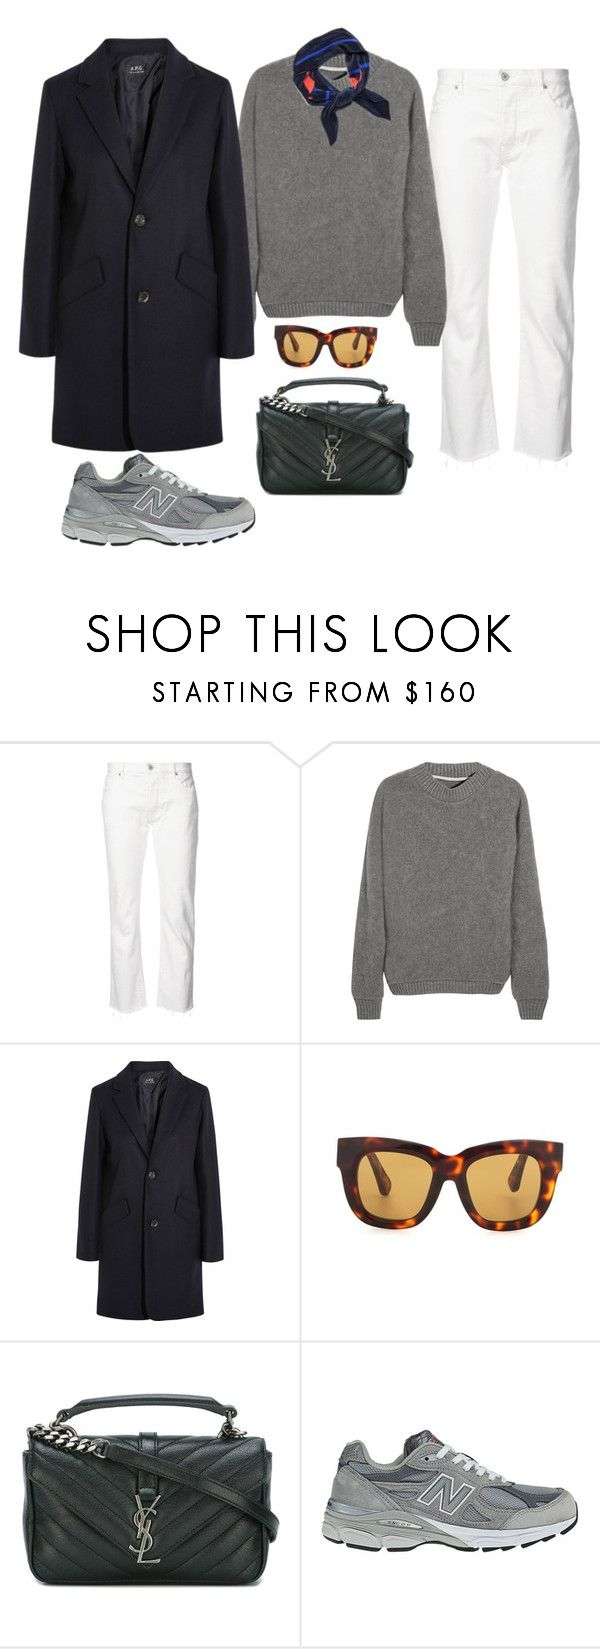 """Untitled #1812"" by mmooa ❤ liked on Polyvore featuring Nili Lotan, The Elder Statesman, A.P.C., Acne Studios, Yves Saint Laurent and New Balance"